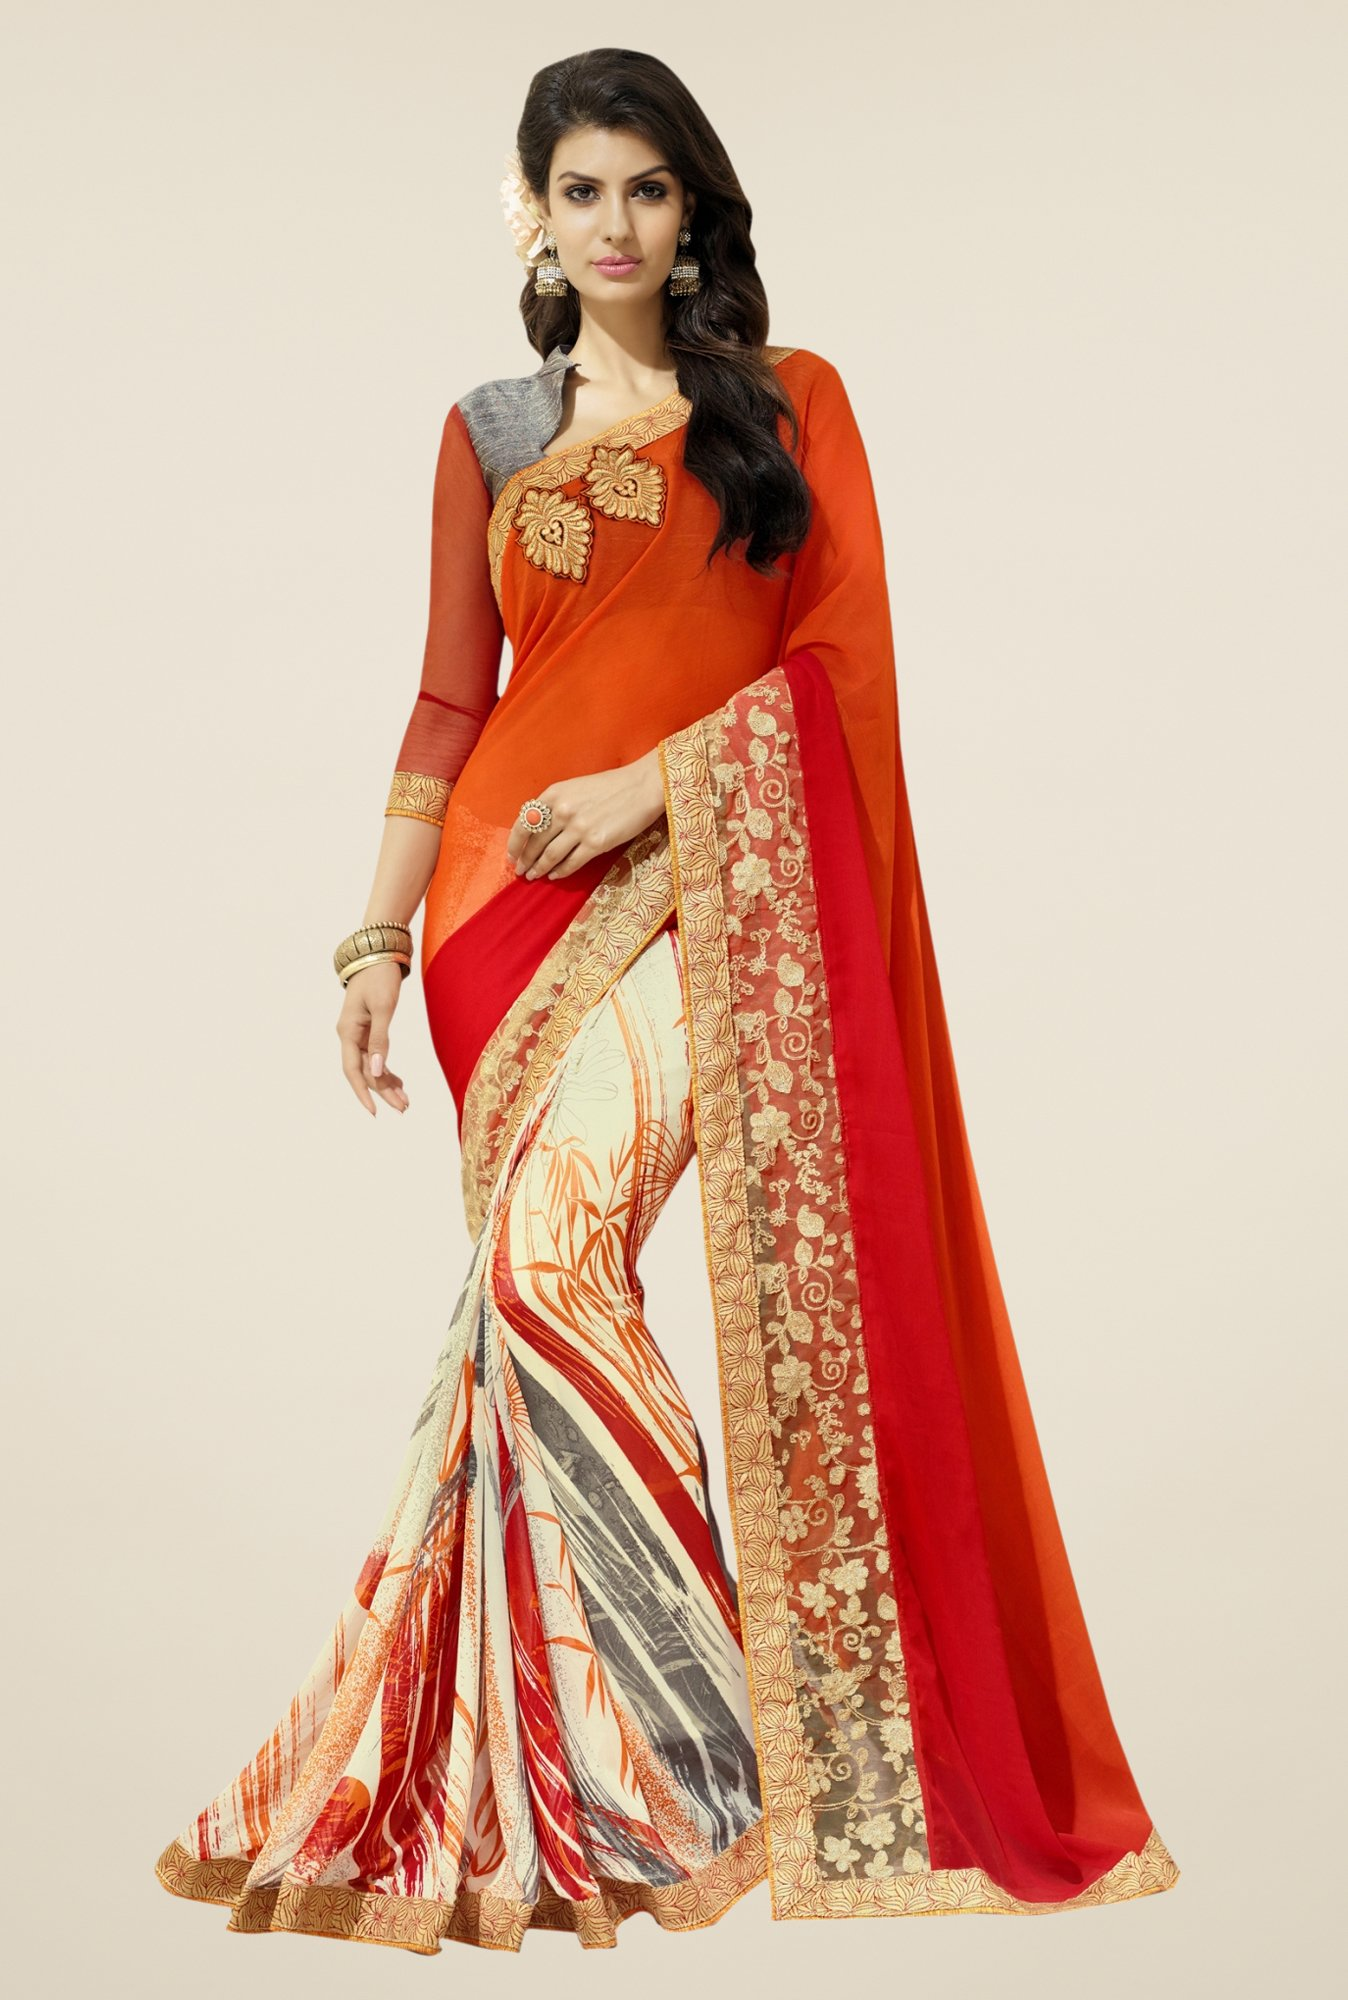 Triveni Beige & Orange Printed Faux Georgette Saree